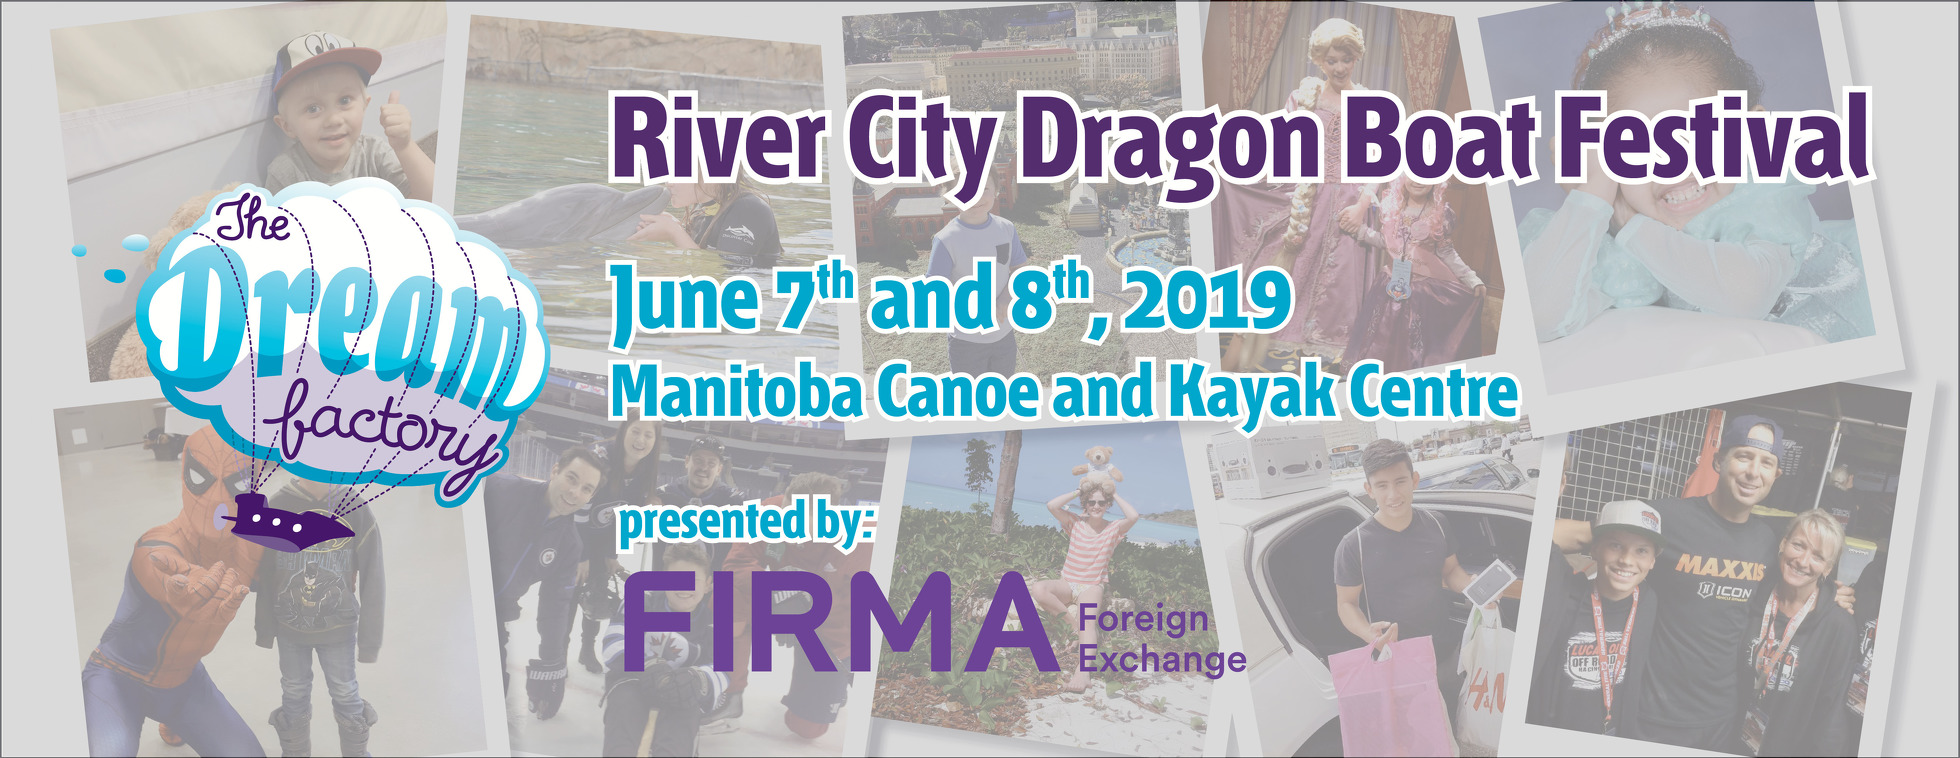 The Dream Factory River City Dragon Boat Festival, Presented by FIRMA Foreign Exchange